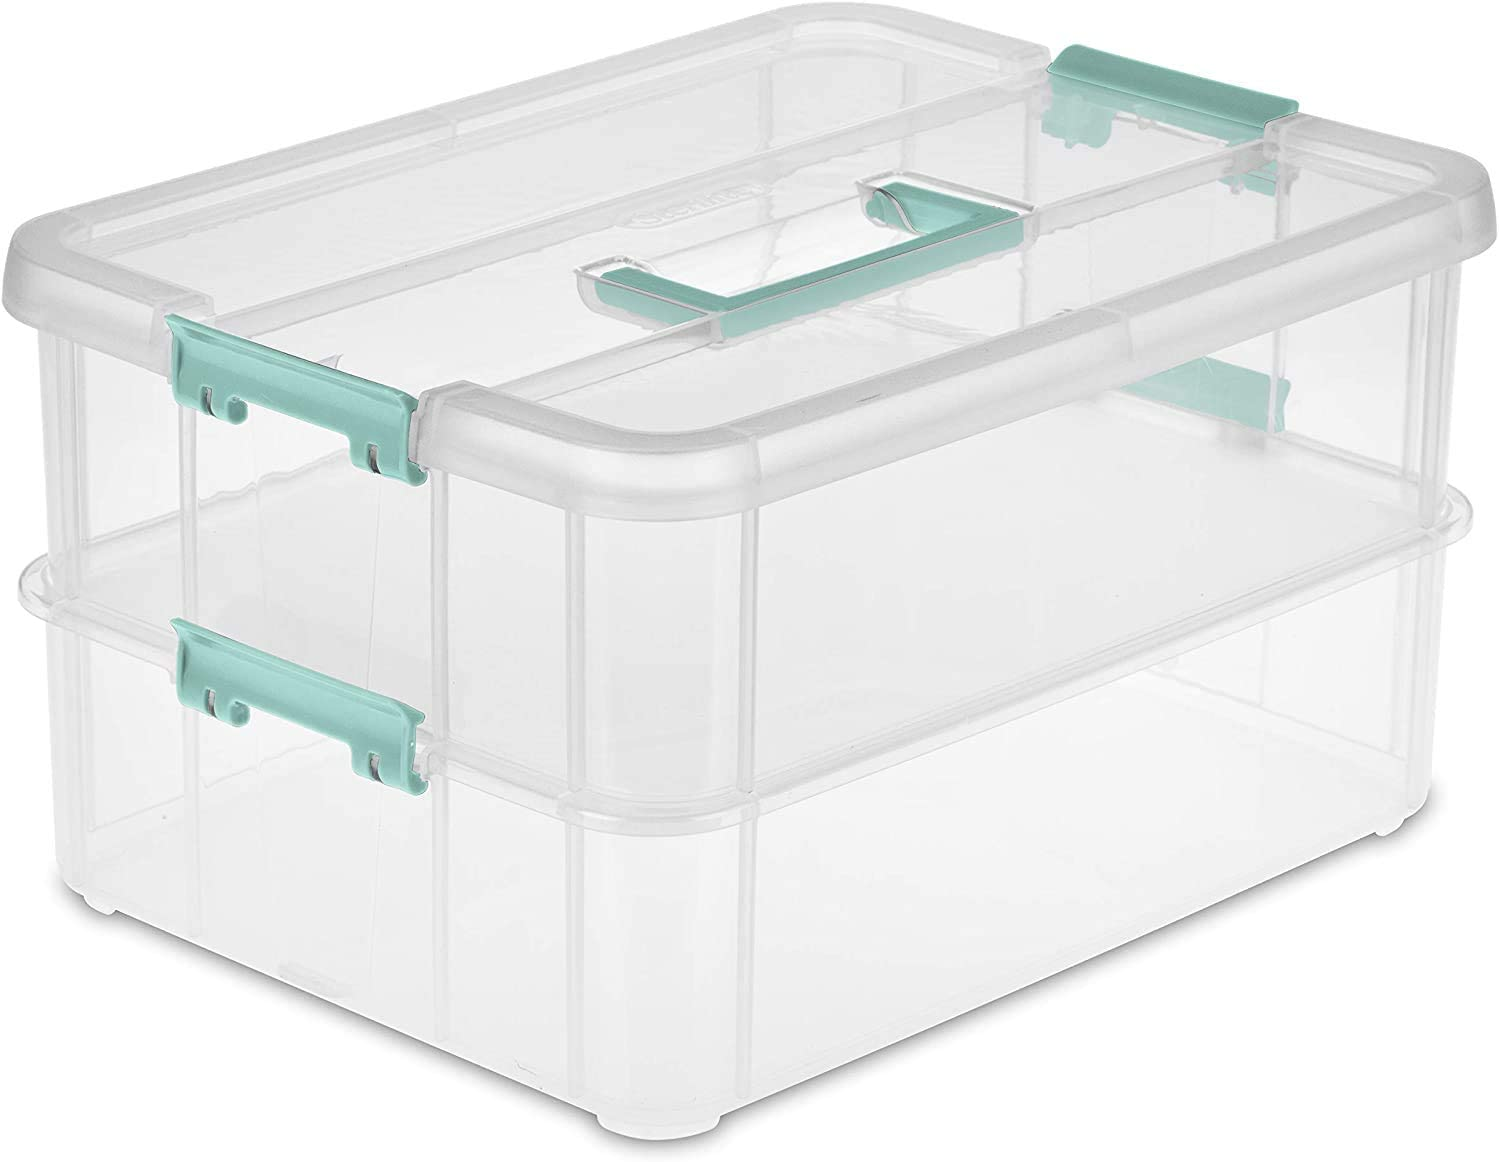 Tribello Stack & Carry 2 Layer Handle Box, Clear Plastic Stackable Case with Lid and Blue Handle - for Organization, Size 14 x 10 x 7- Made in USA